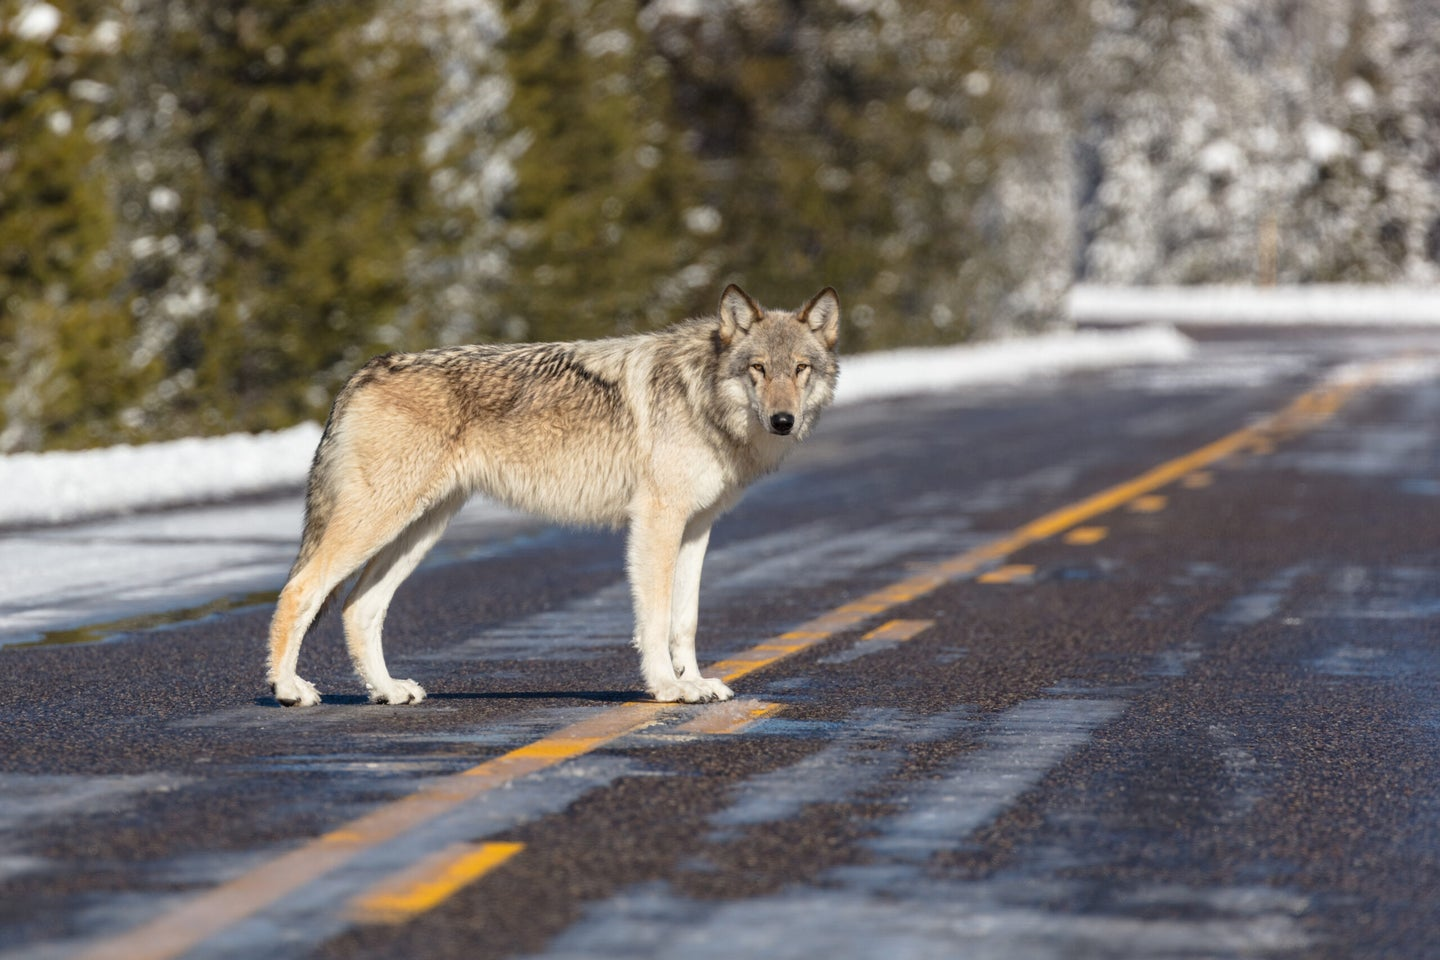 Wolf in the road